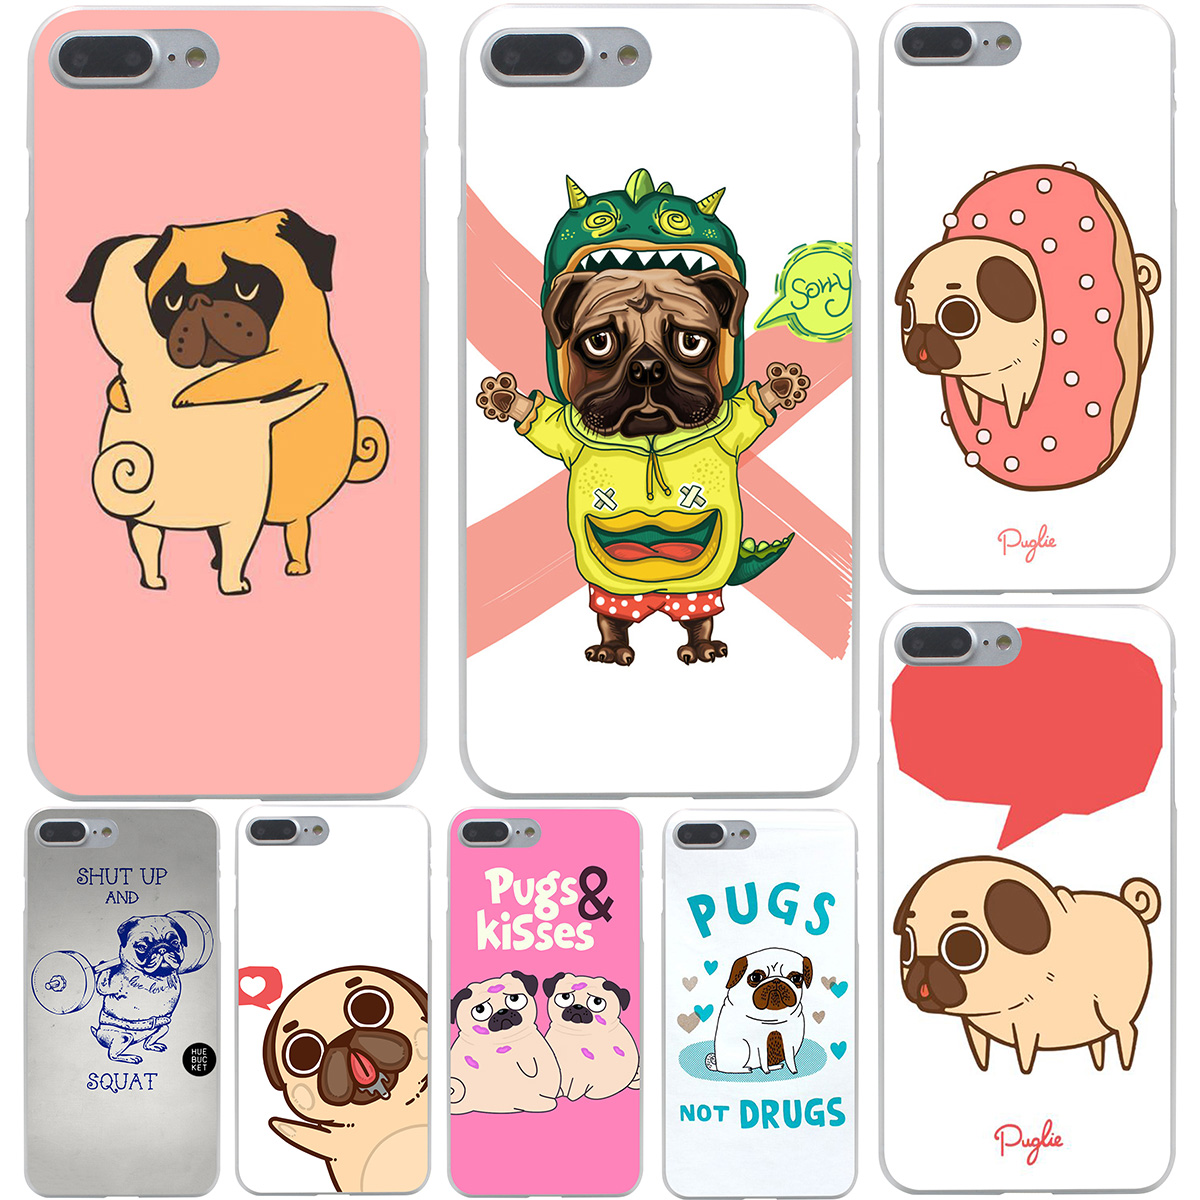 Image result for piper the pug designs Hard Transparent Cover Case for iPhone 7 7 Plus 6 6S Plus 5 5S SE 5C 4 4S